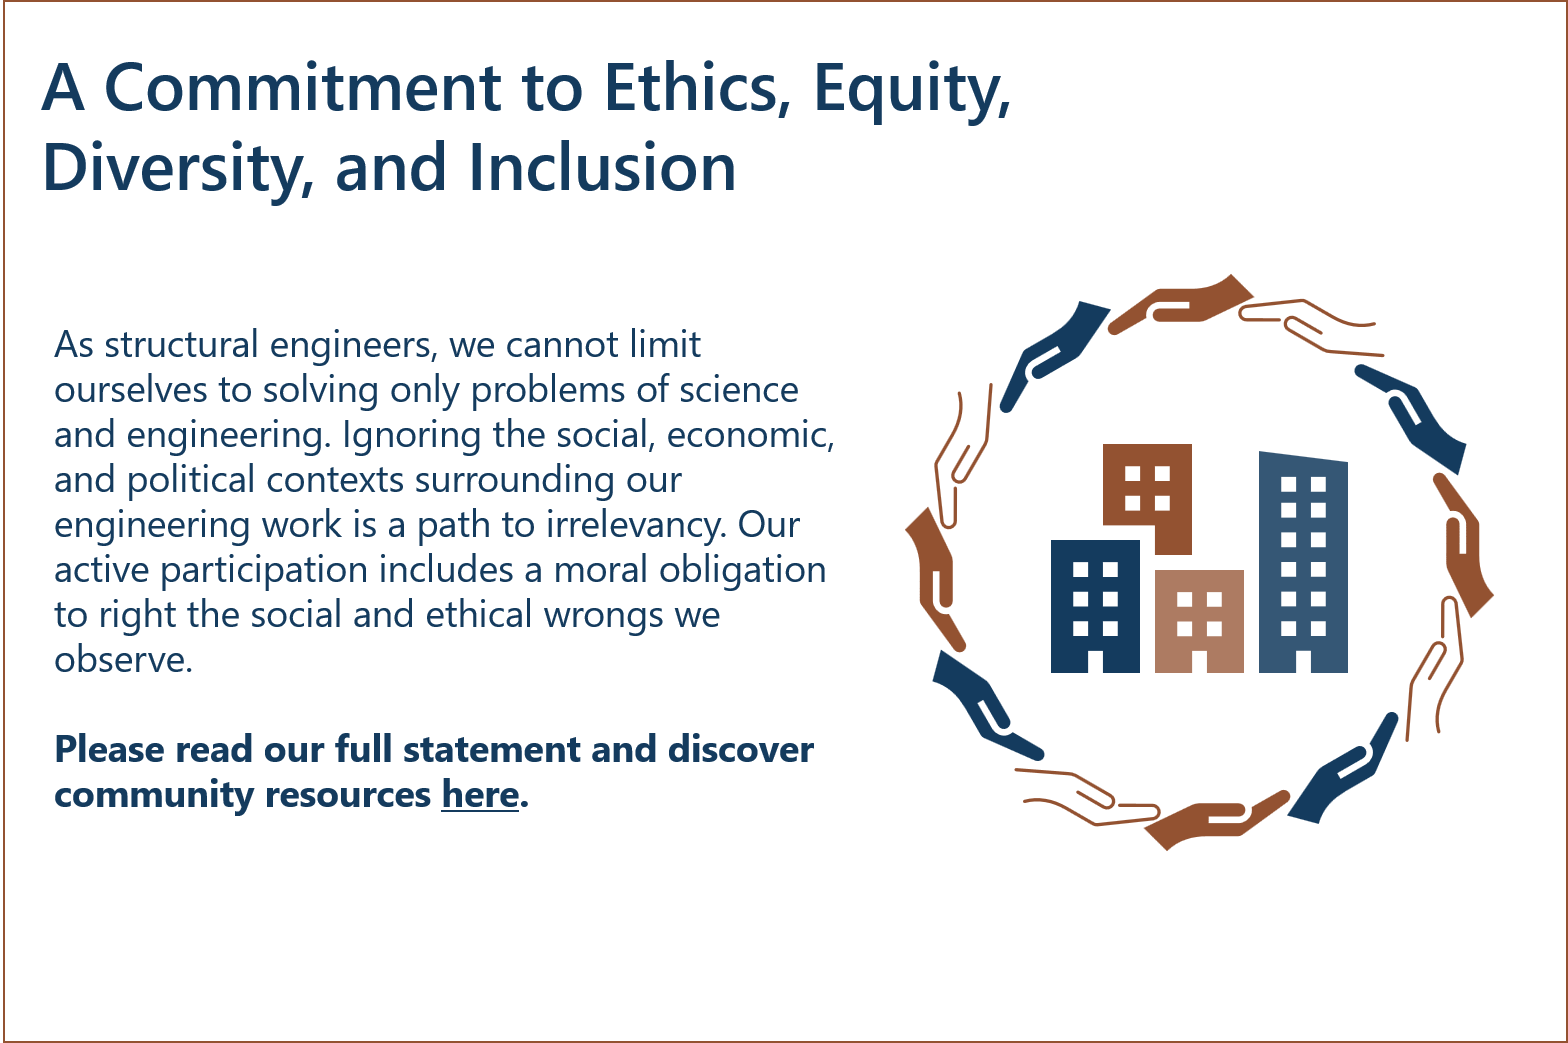 A Commitment to Ethics, Equity, Diversity, and Inclusion